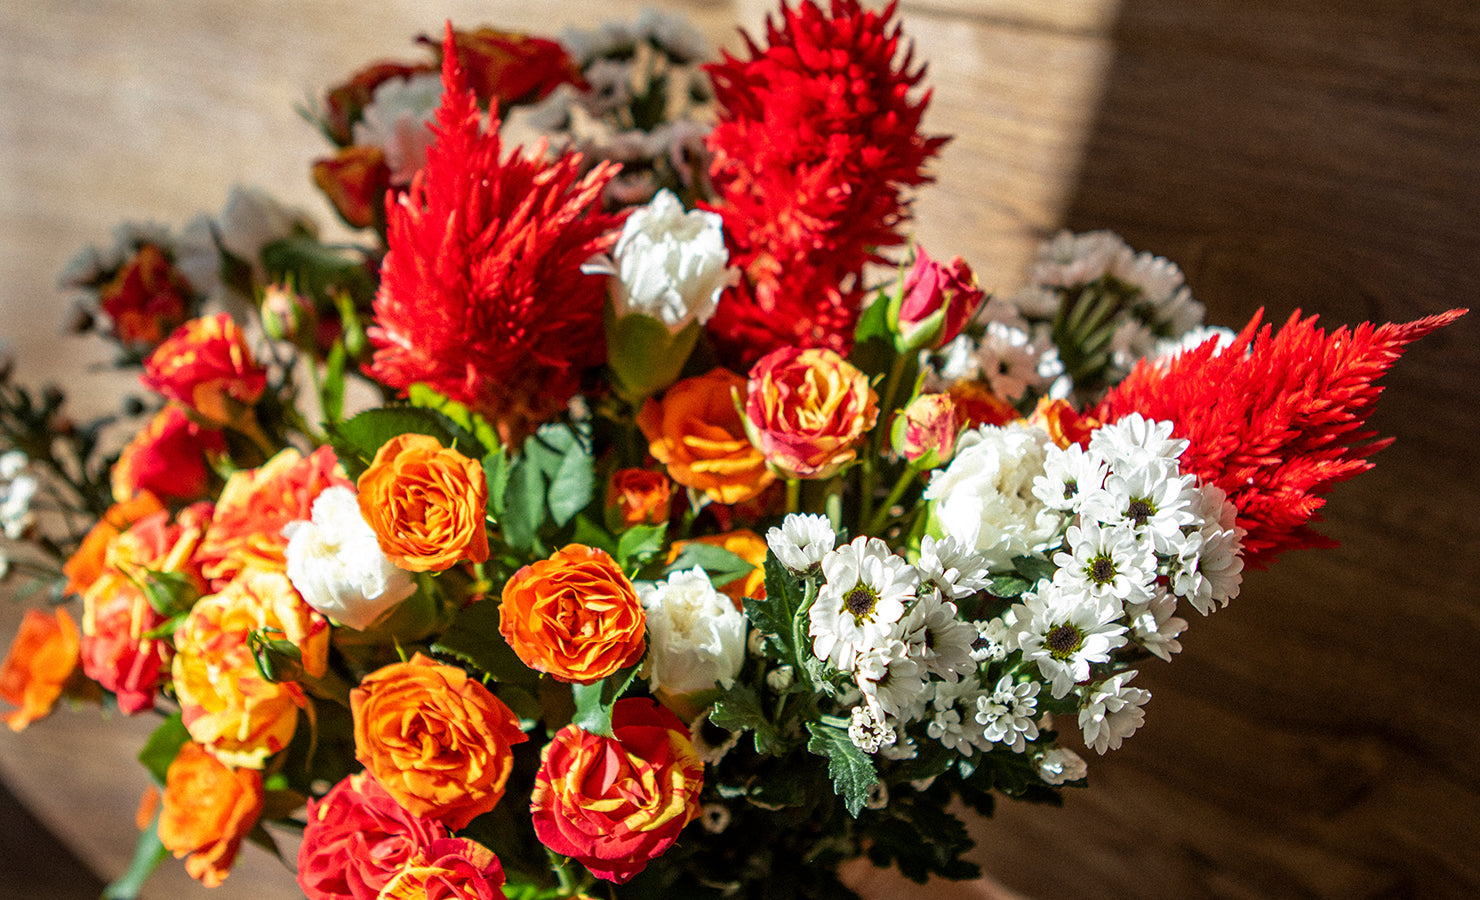 00-how-to-care-for-fresh-flowers-feature